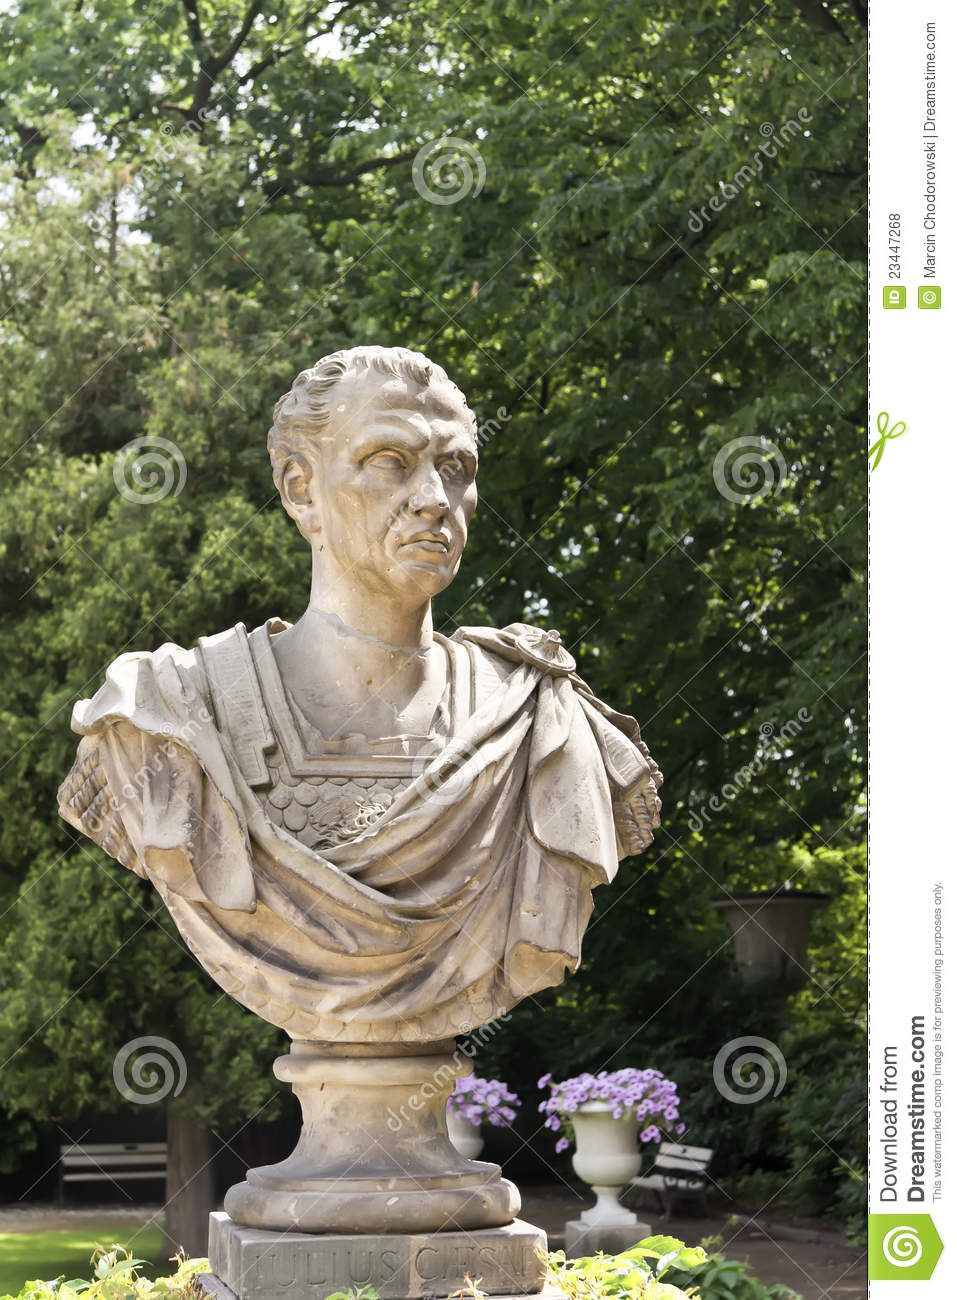 julius ceasar Caesar's greatest gift was his charisma, and on one occasion it won back his rebelling army caesar had returned to rome after some battles in the east.